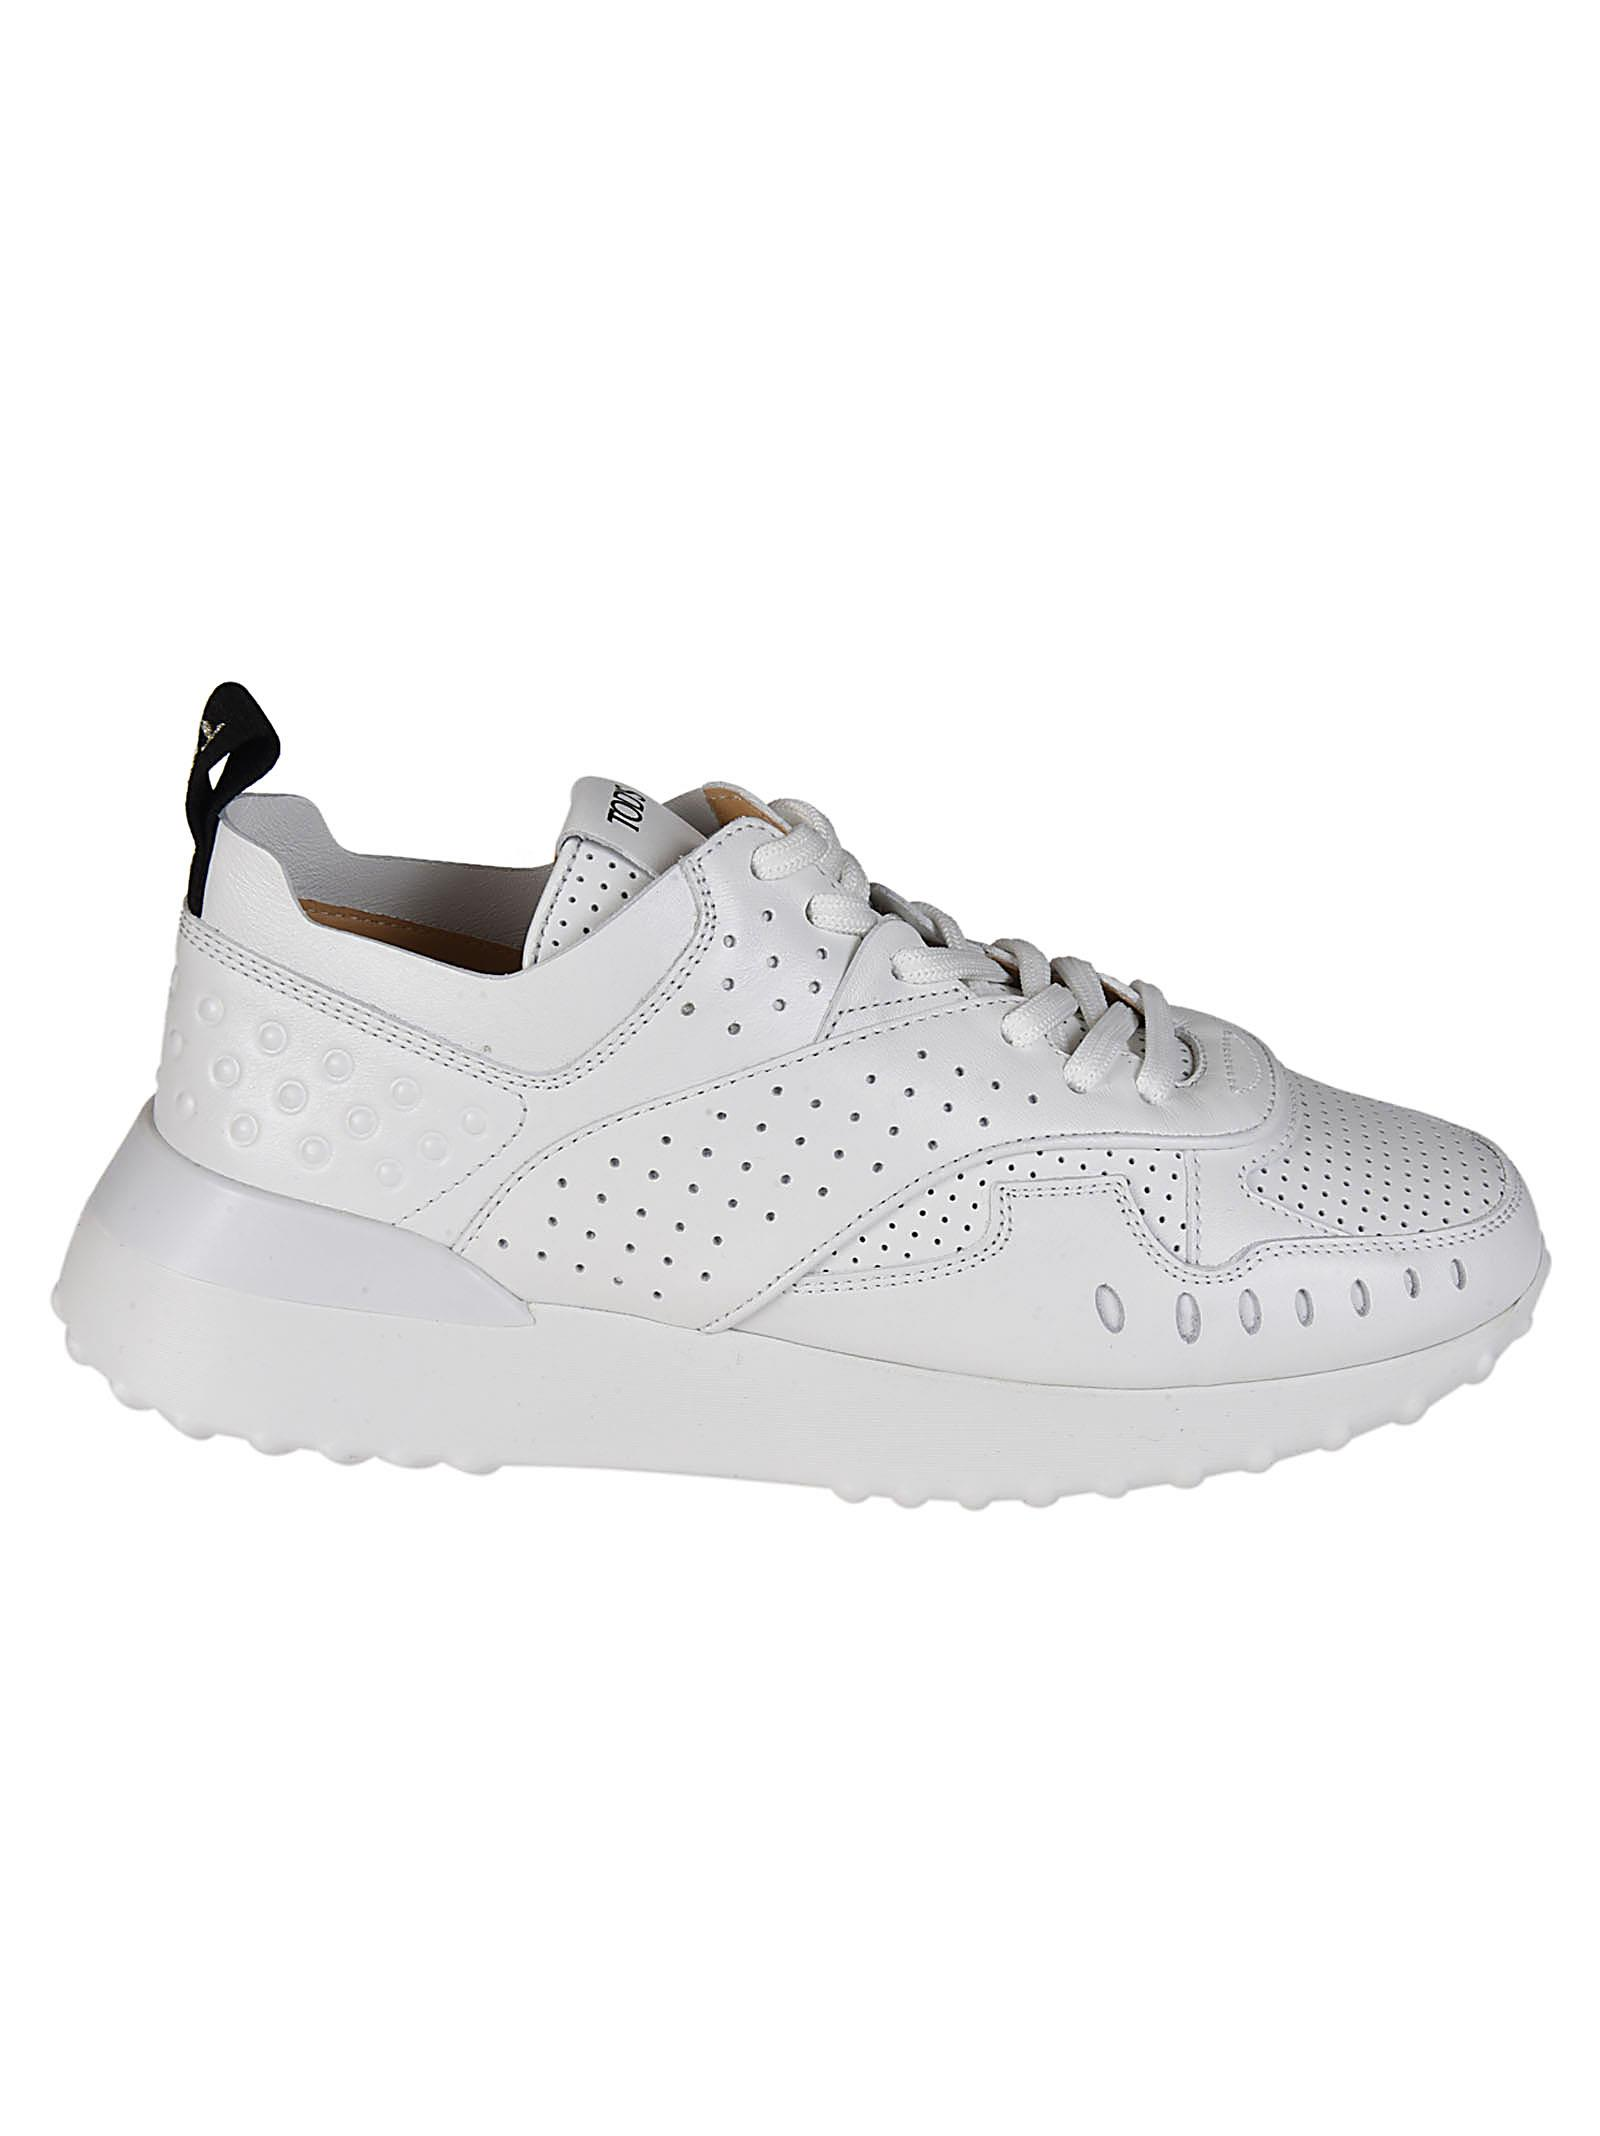 White drilled leather sneakers